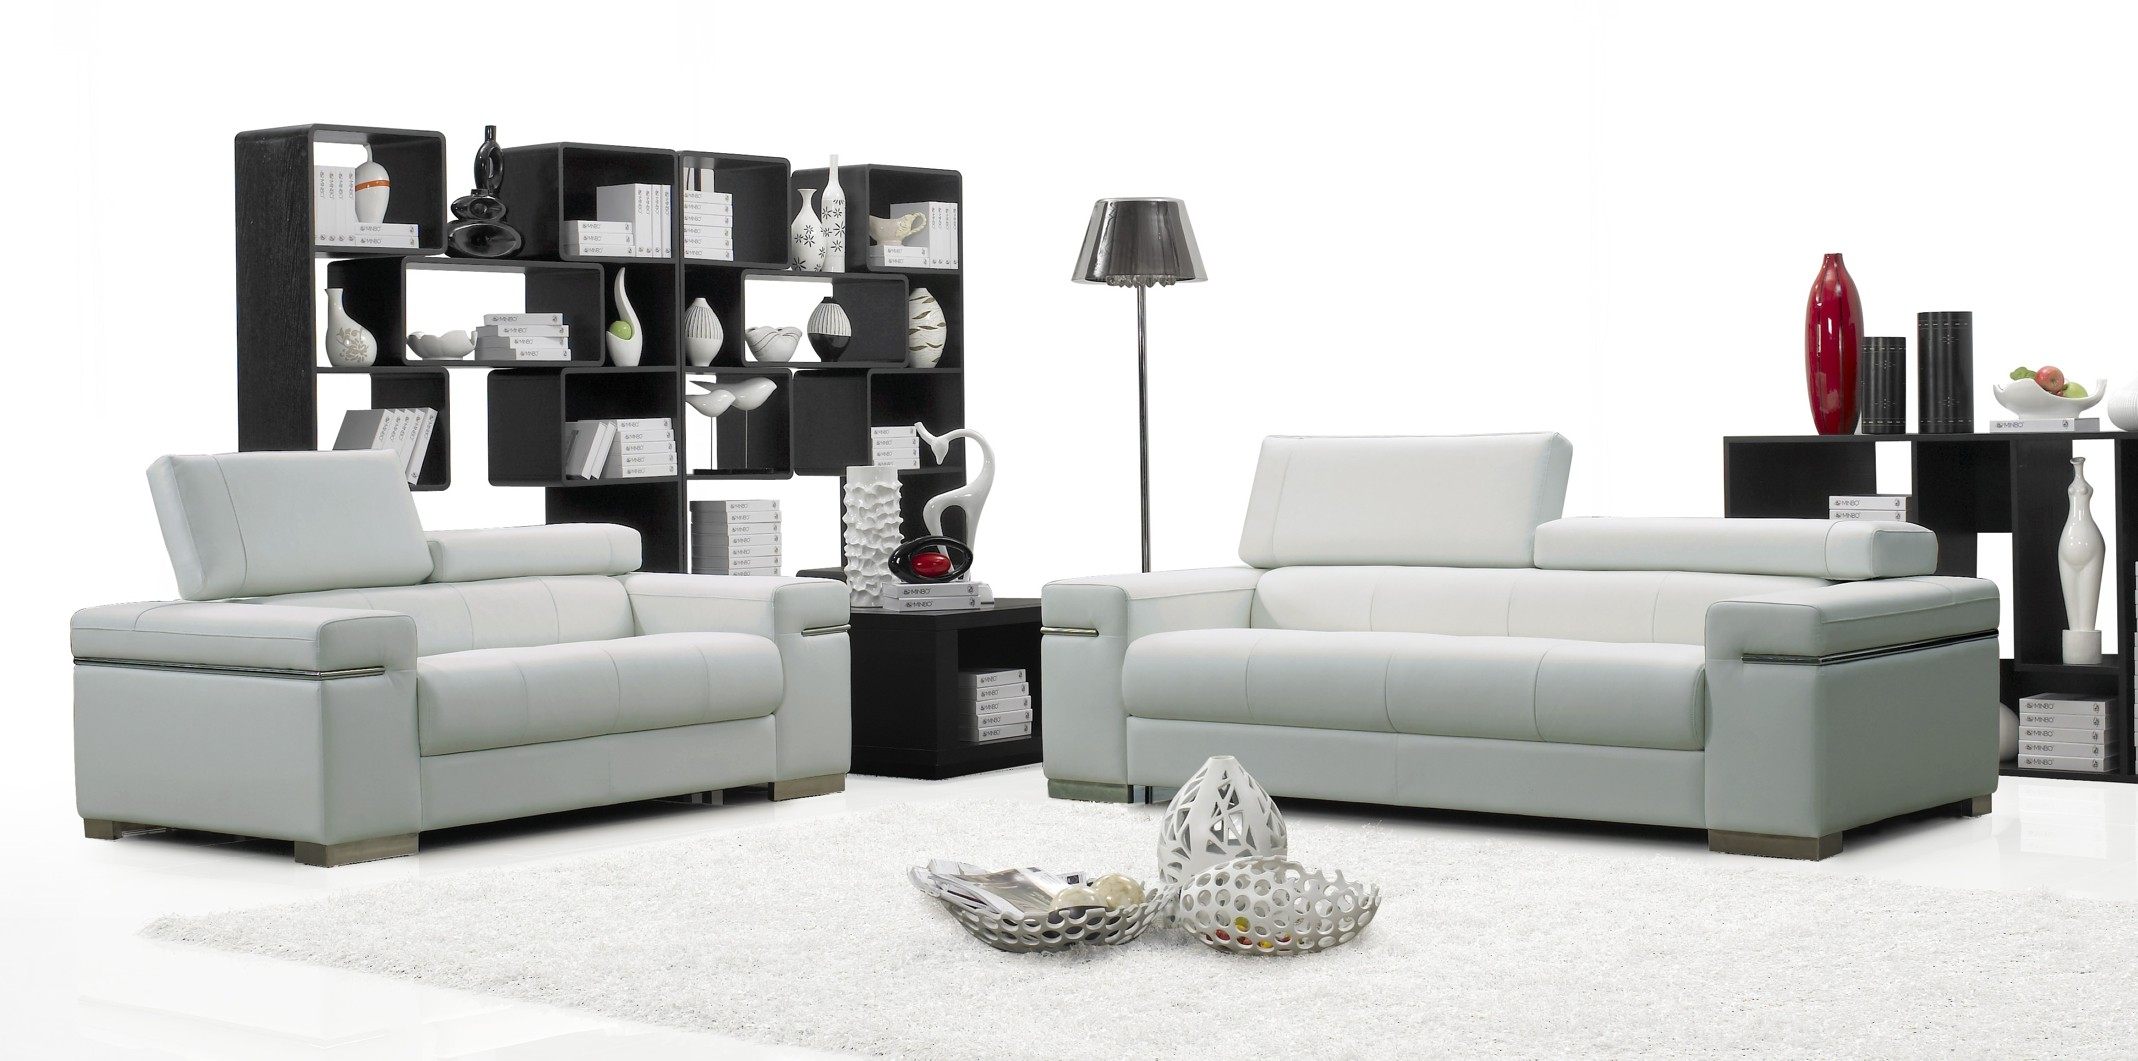 True modern furniture online homesfeed for Sales on furniture online